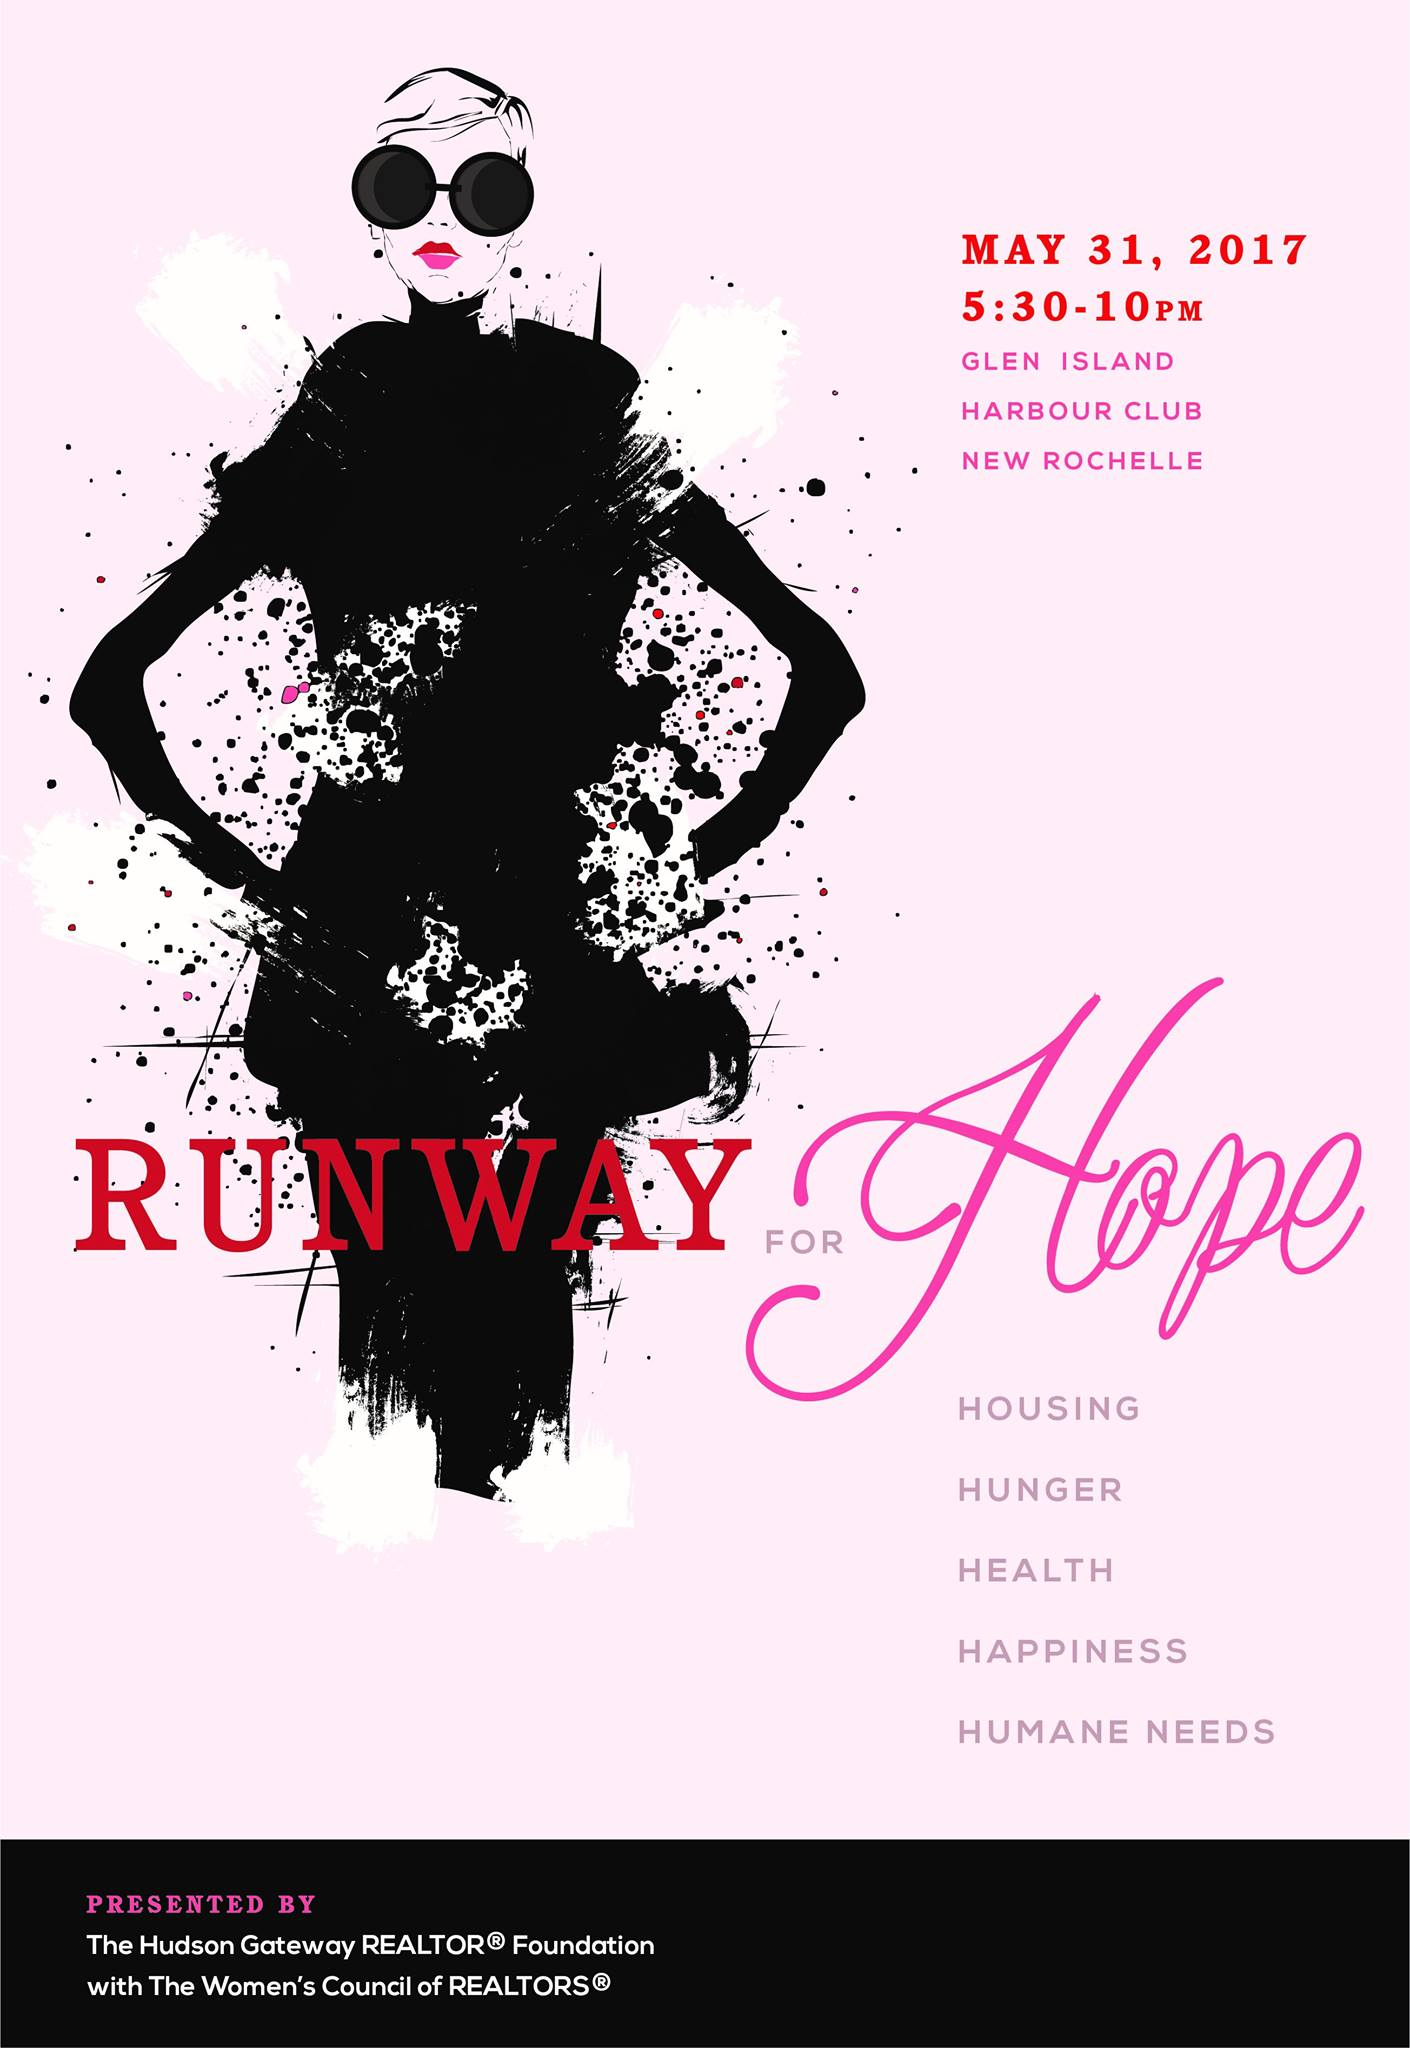 Hollingsworth to walk Runway for Hope Fashion Show